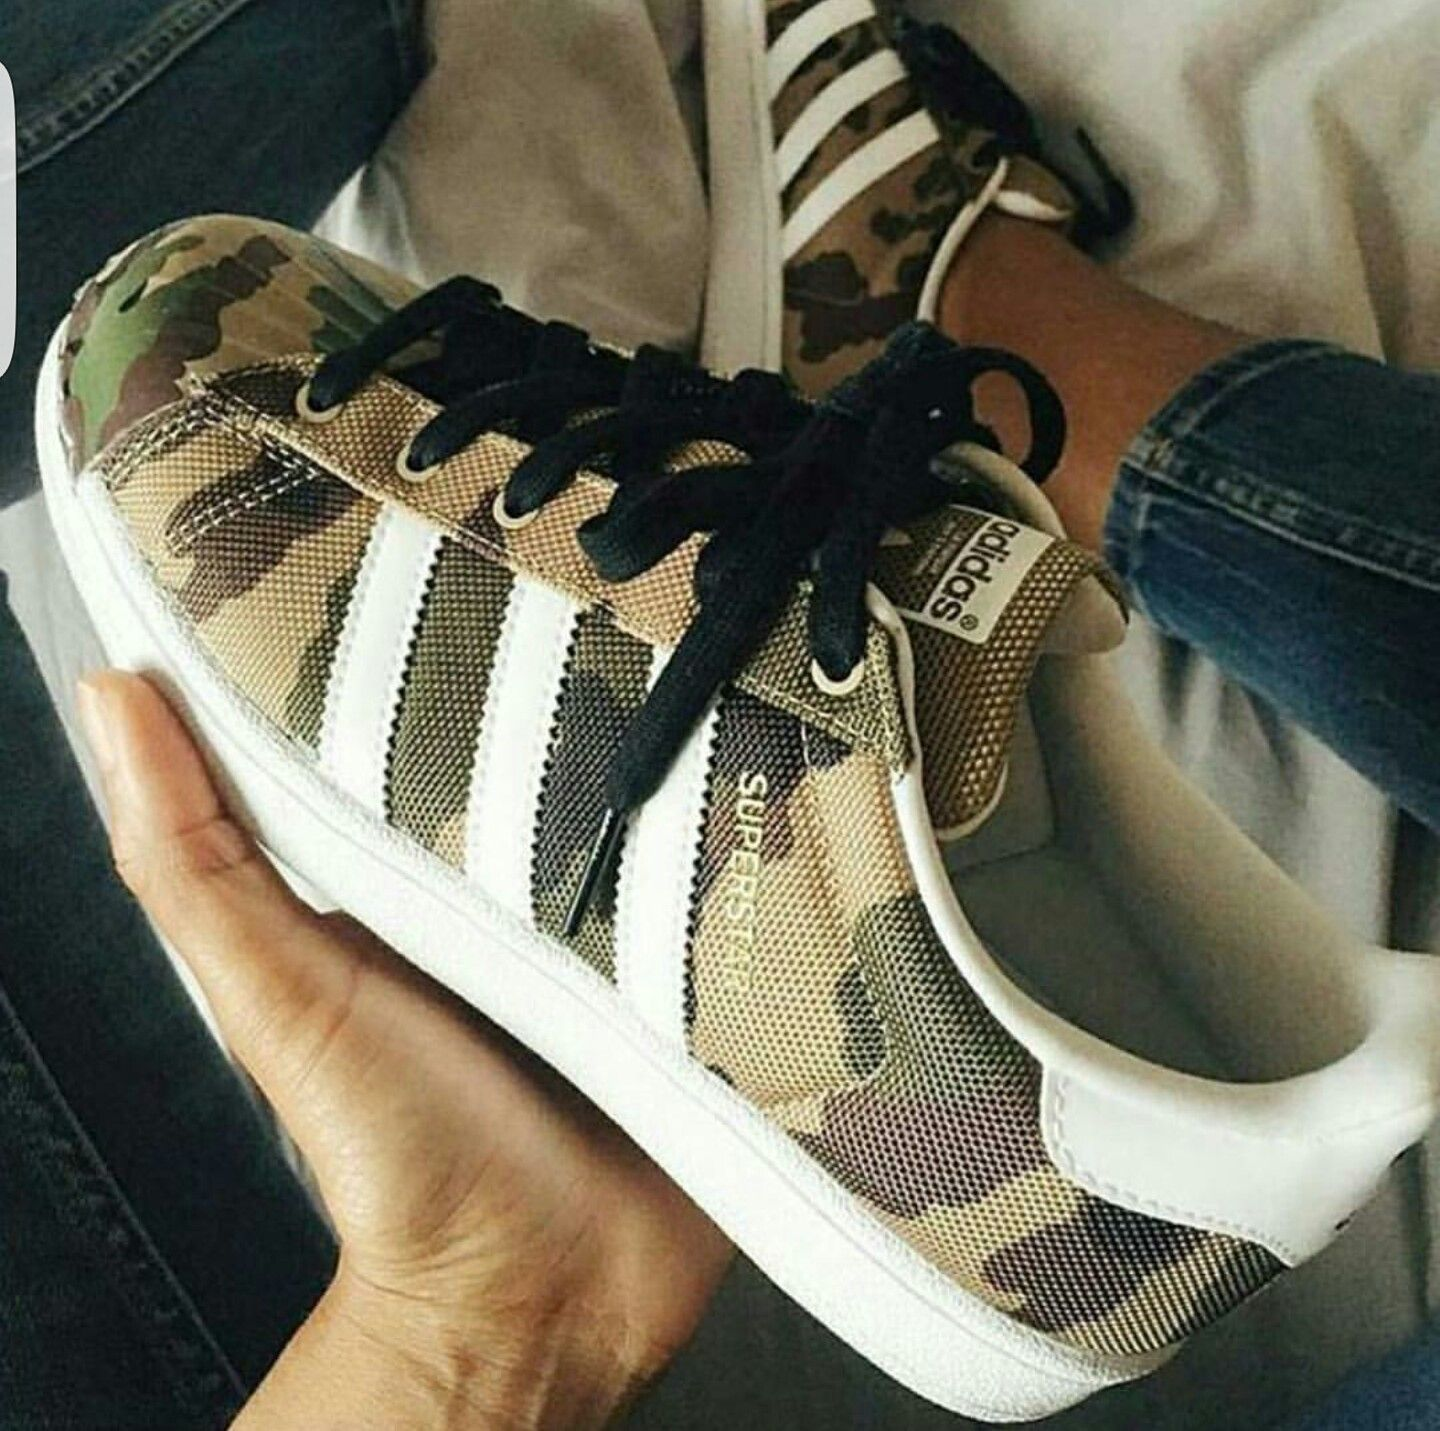 Love this Adidas sneaker with camouflage print!